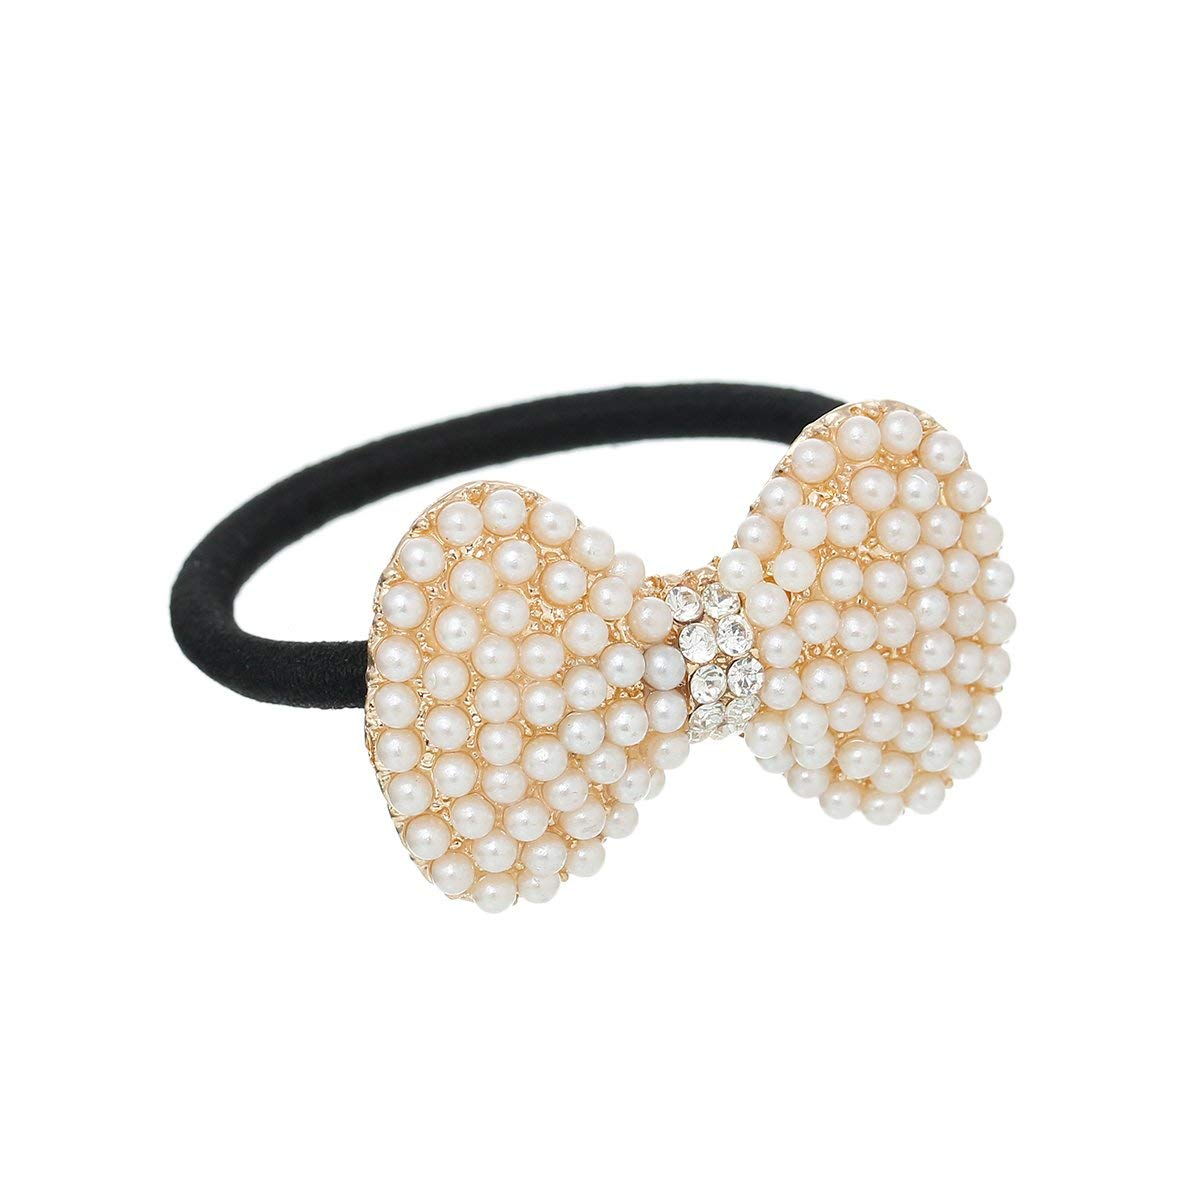 Nylon Cirlce Ring Hair Band Ponytail Holder Black Acrylic Imitation Pearl Choose Your Style From Menu (Bowknot A)